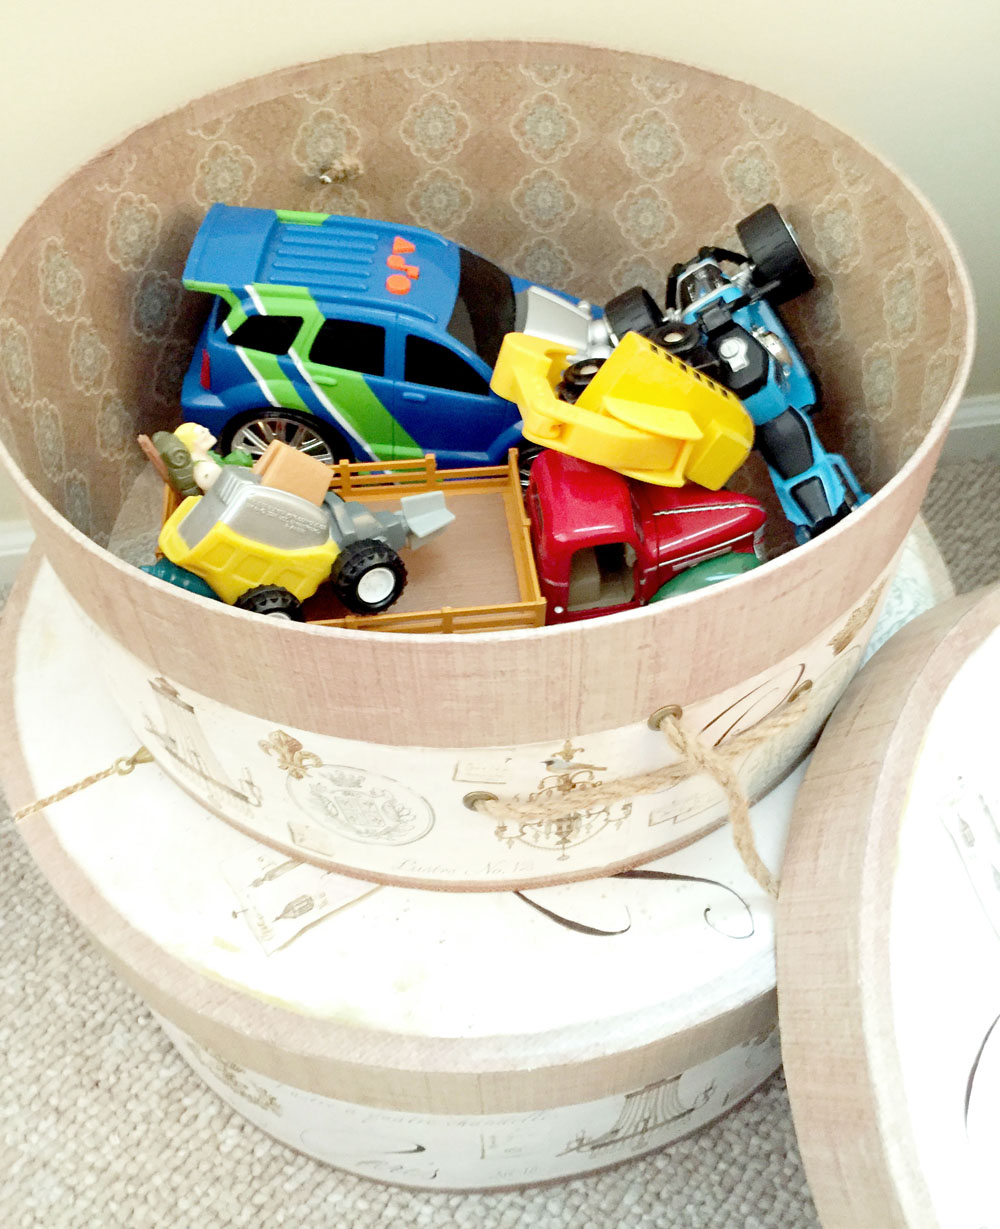 DIY Home Organization - Hidden Toy Storage Ideas